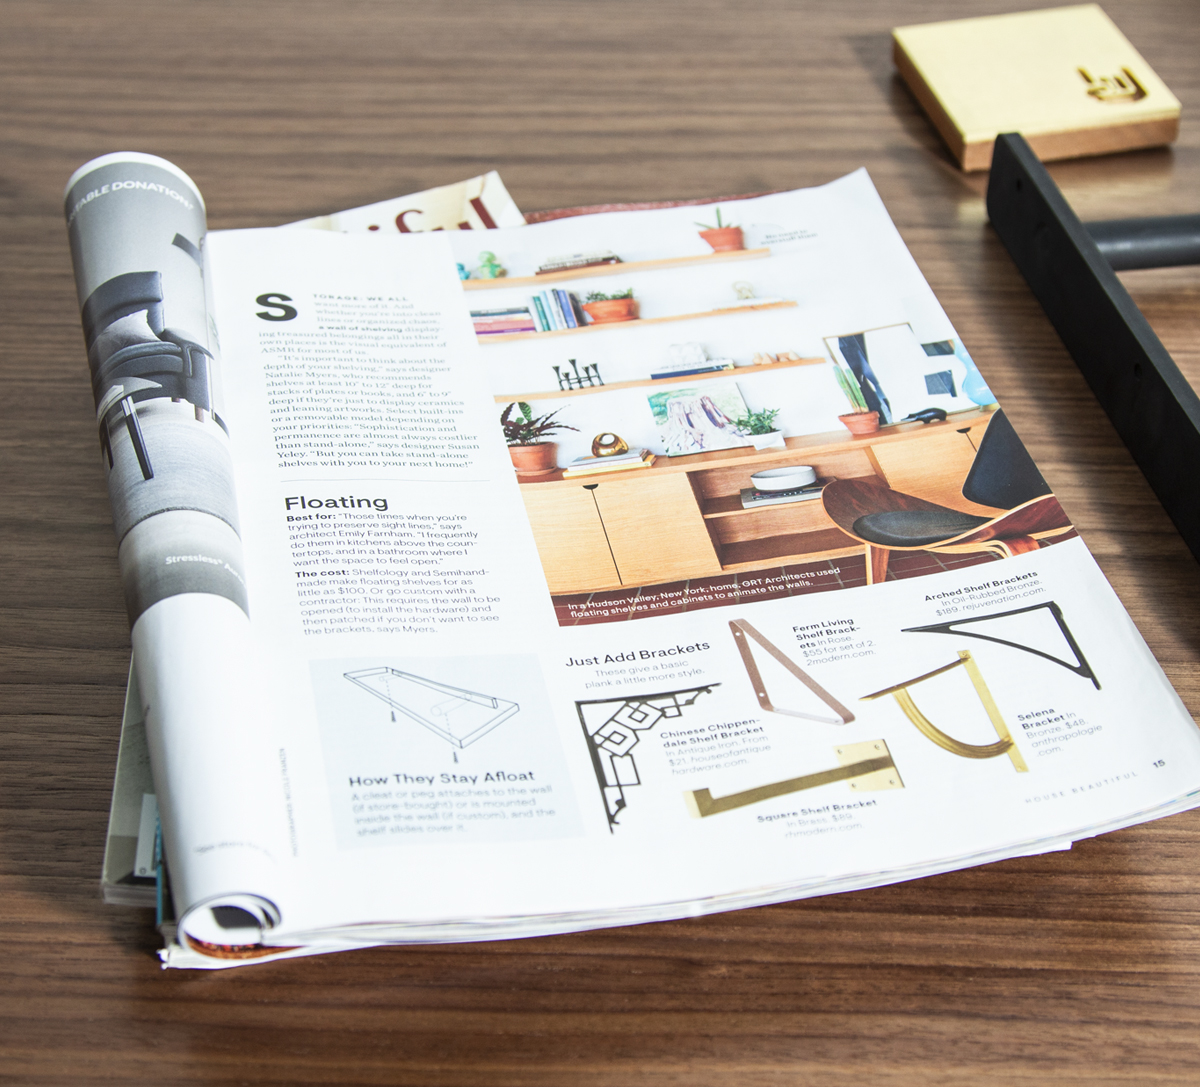 Floating Shelves by Shelfology featured in House Beautiful Magazine. Content Preview.